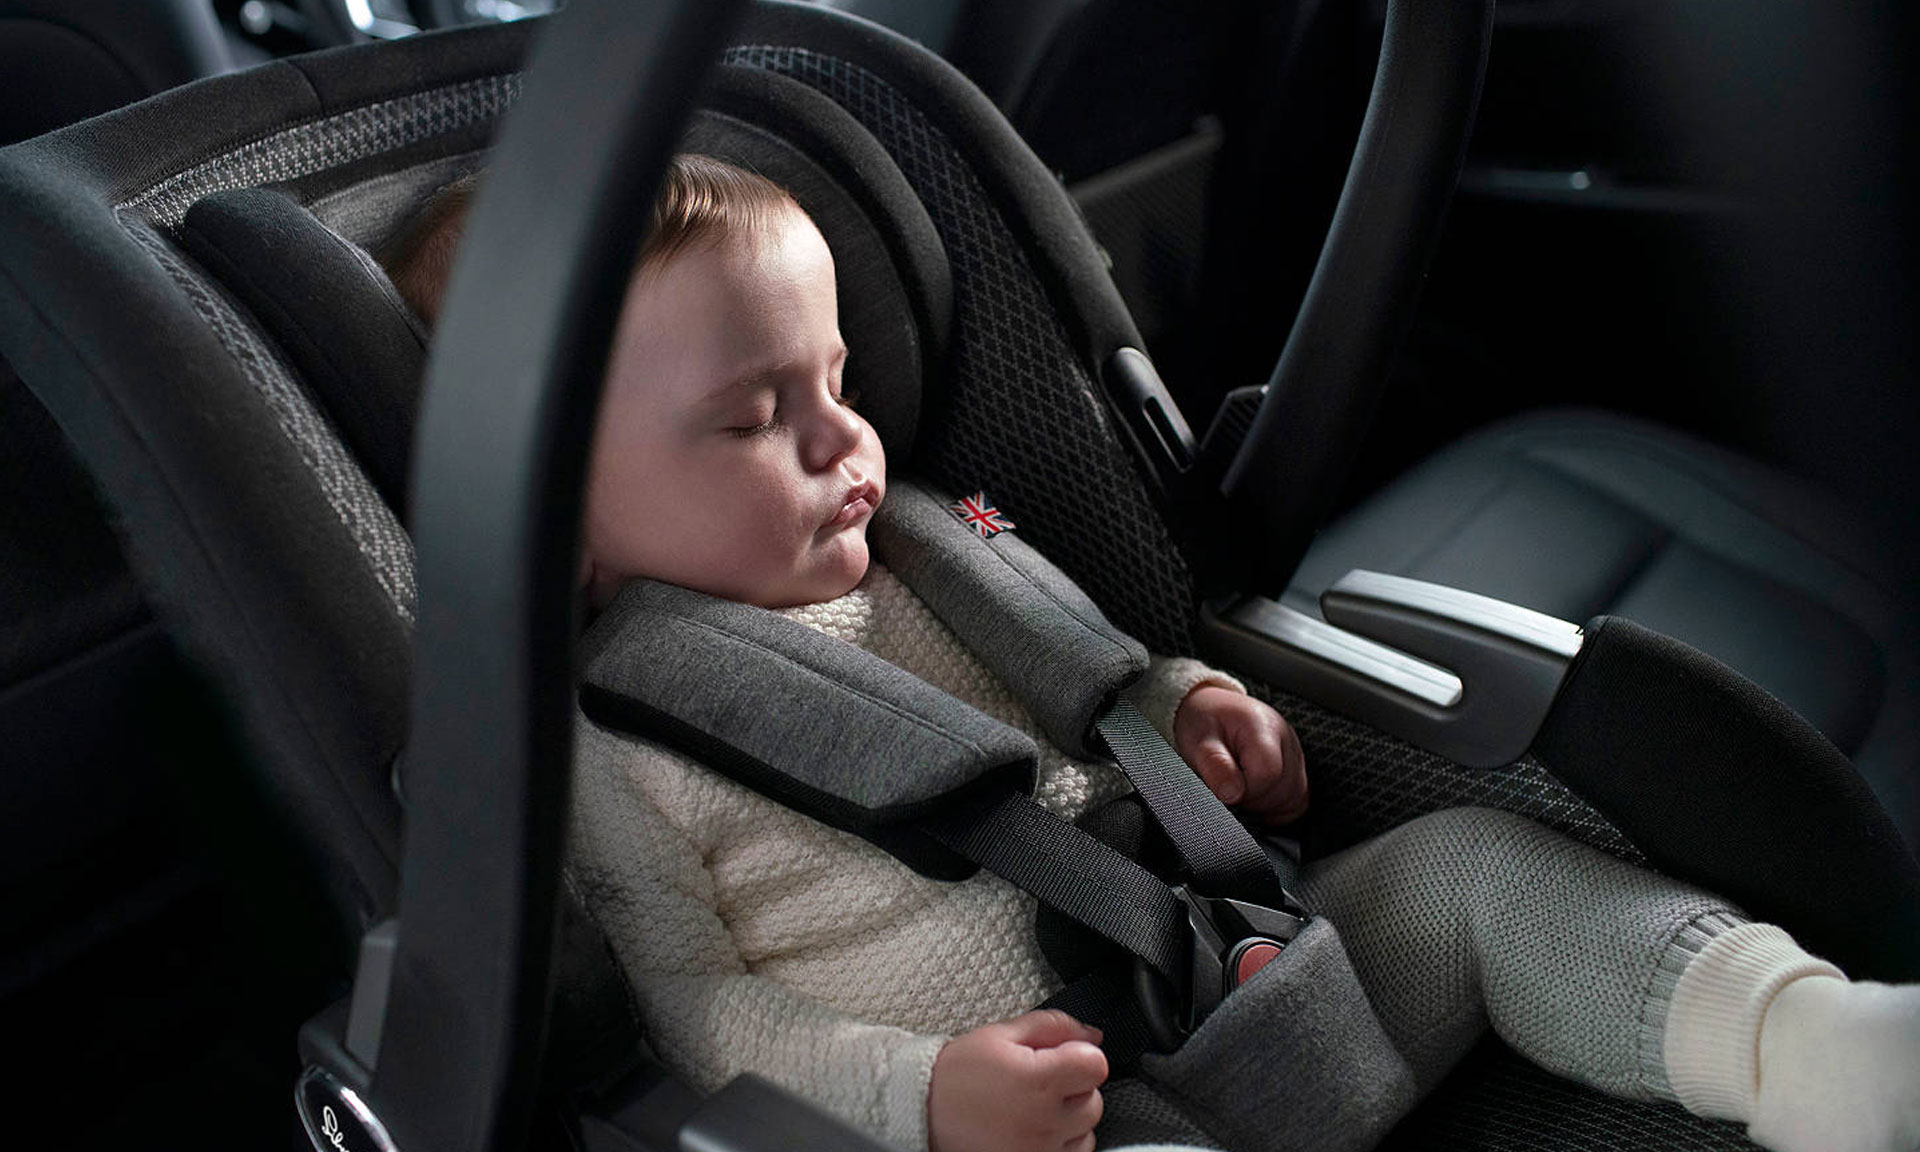 joie maxi cosi nuna and silver cross baby car seats put to the test which news. Black Bedroom Furniture Sets. Home Design Ideas